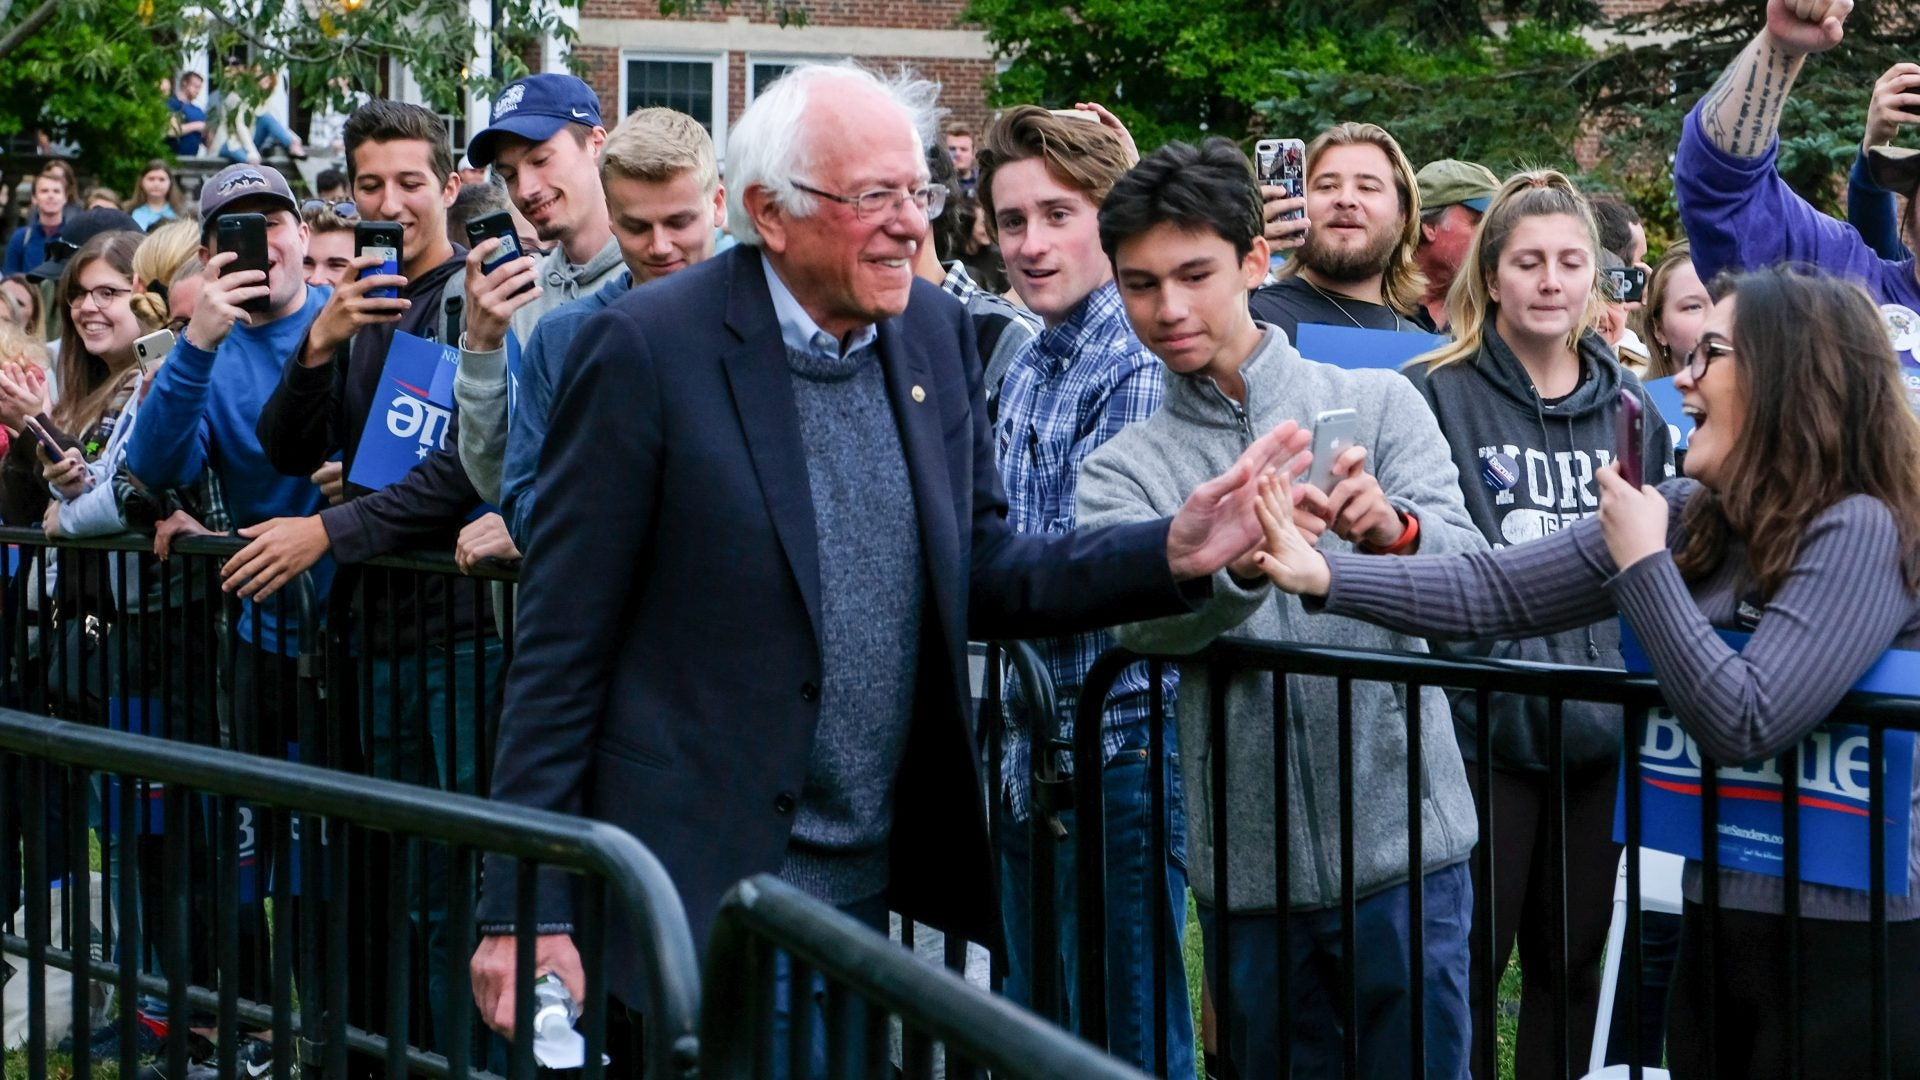 Sanders plans to resume campaigning 'as soon as possible'